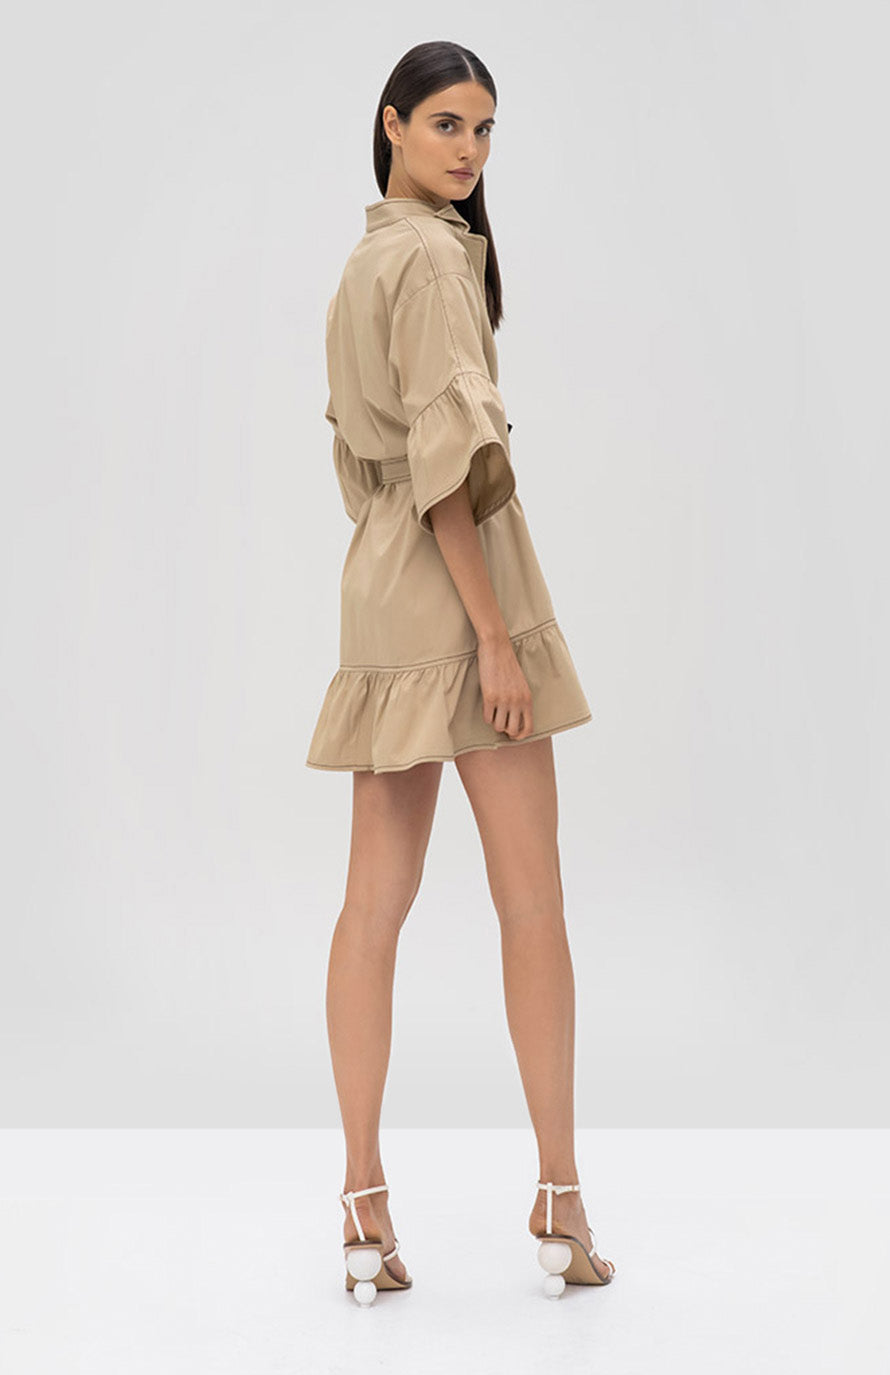 Alexis Mariano Dress in Tan - Rear View